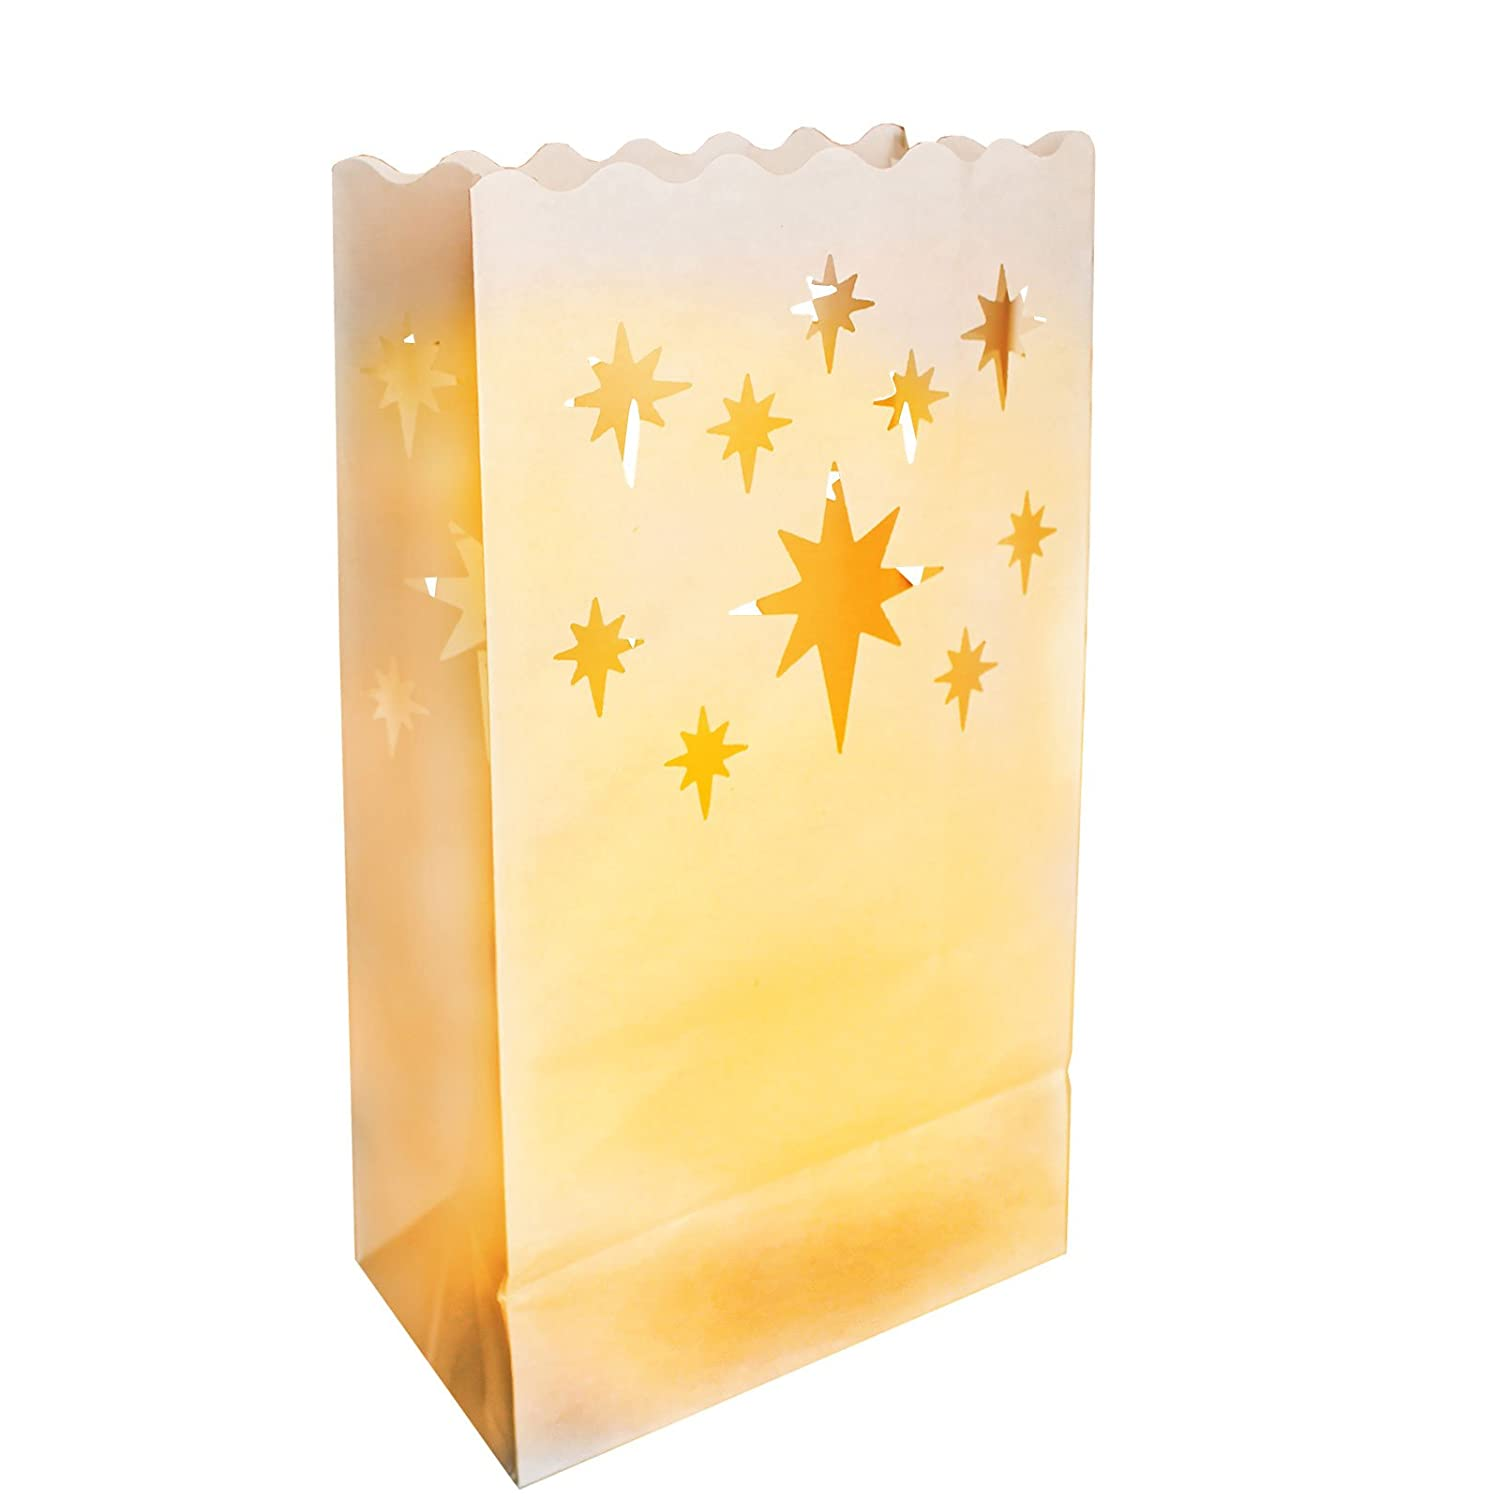 10 Pack Large star Design white paper of decorative Luminary Bags-candle Lanterns light- perfect for indoor and outdoor use. Kurtzy CB-504